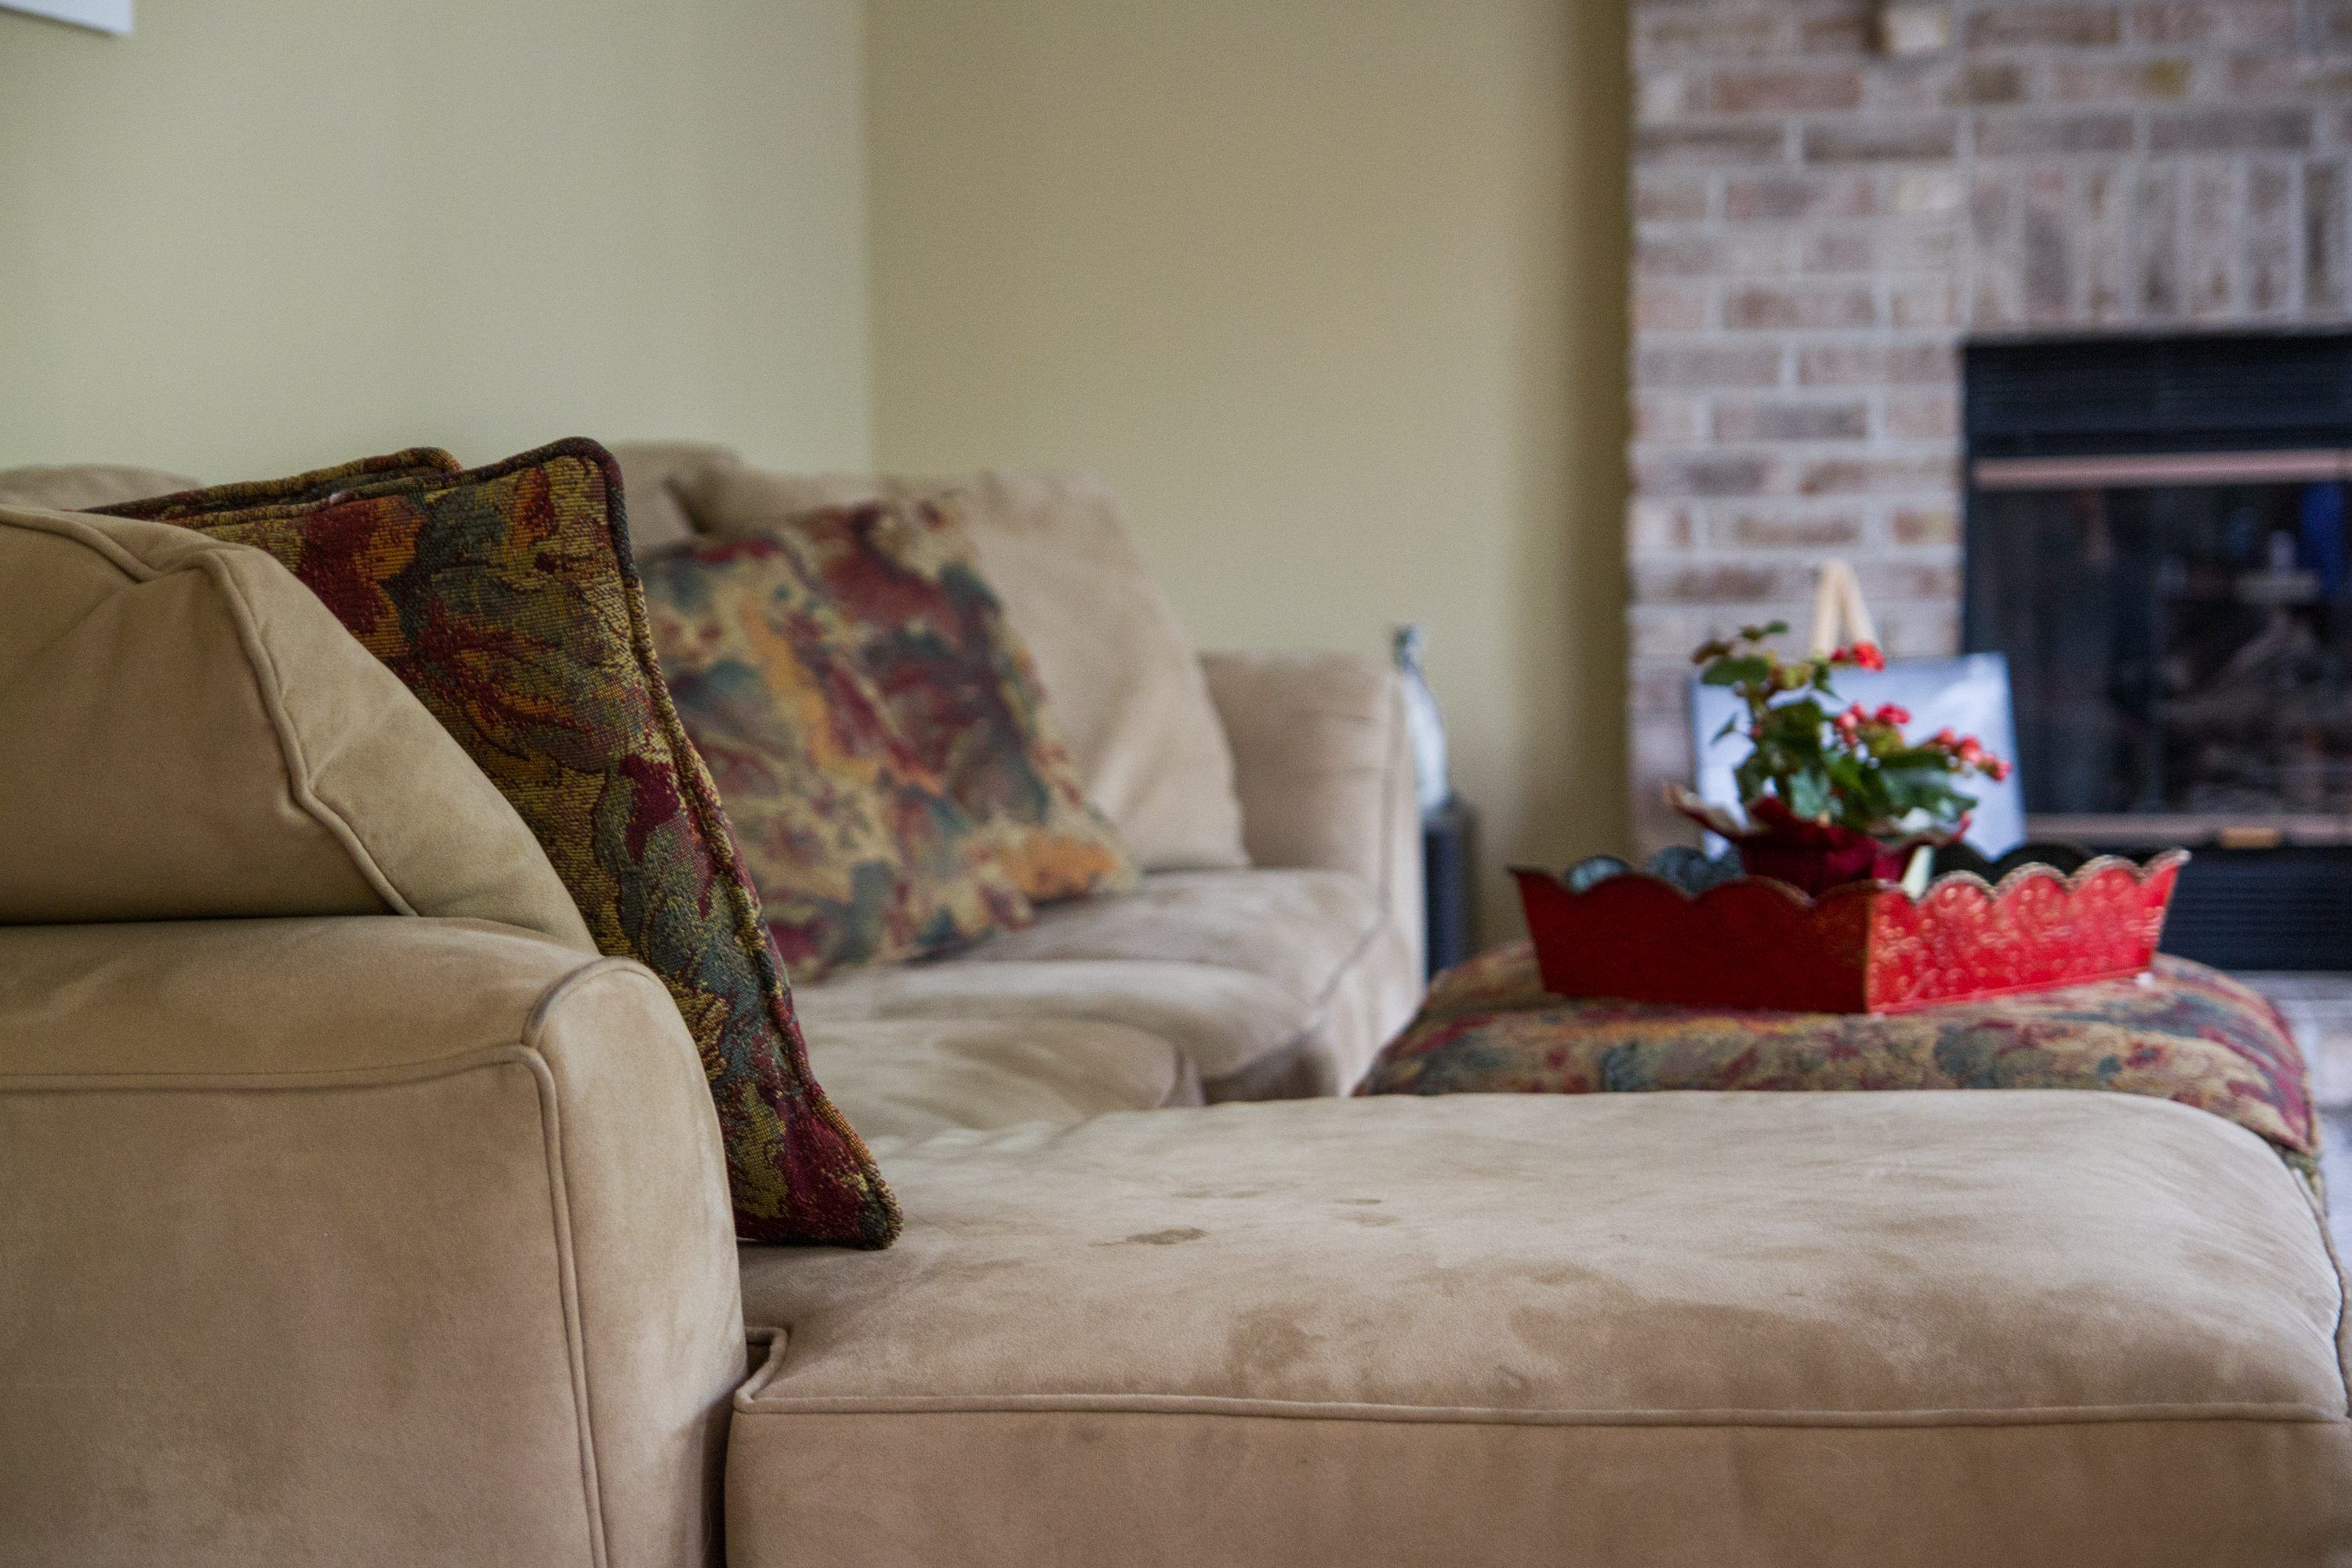 How To Get A Water Stain Out Of Microfiber Couch Cleaning